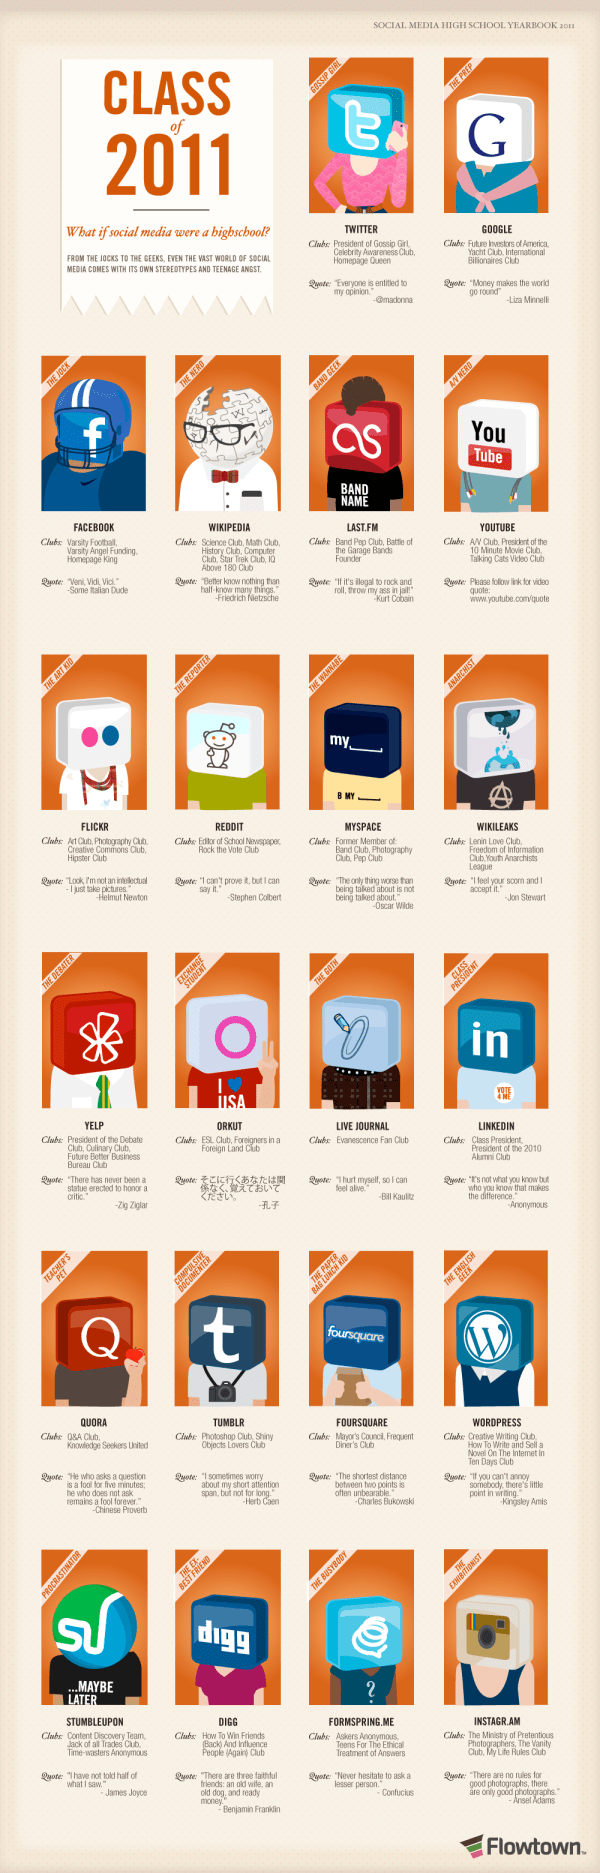 If Social Media Were A High School [infographic] 2